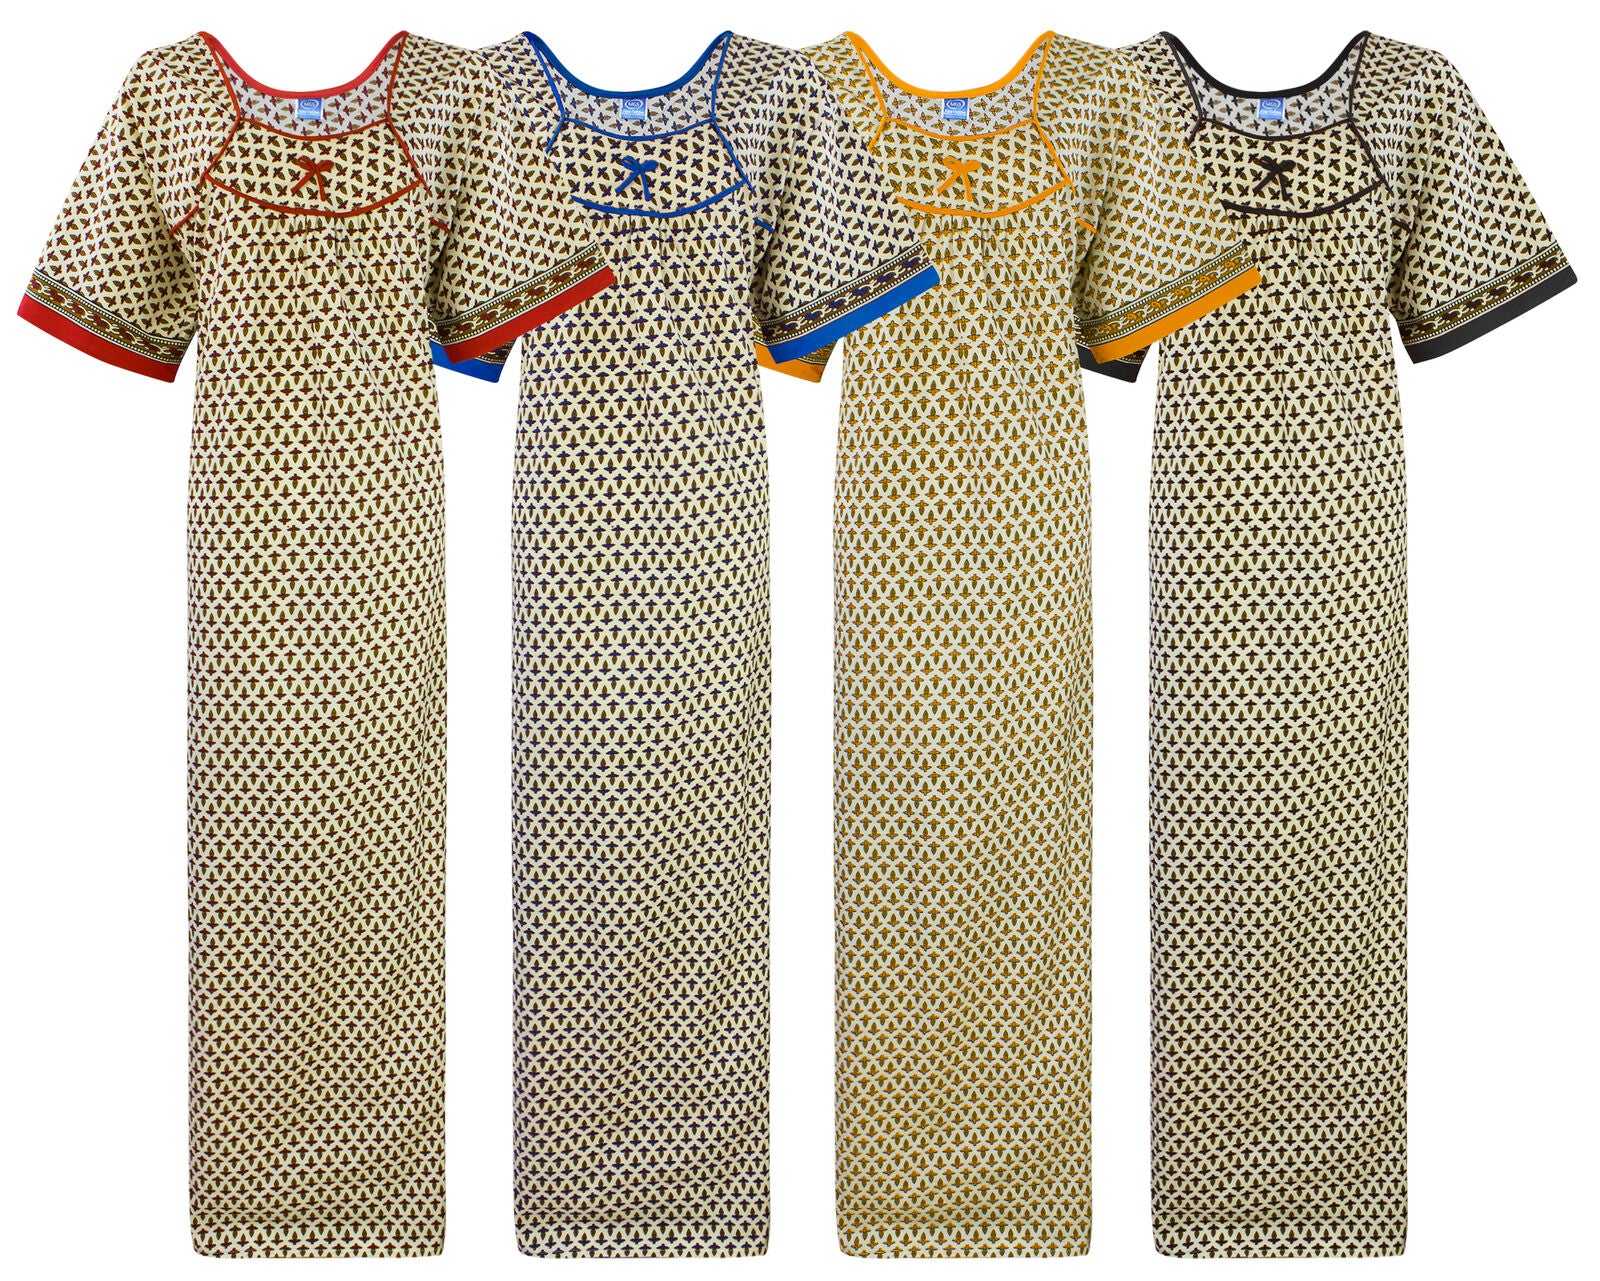 Color: Red, Yellow, Blue, Black 100% Cotton Short Sleeve Long Nighty Size: Plus Size